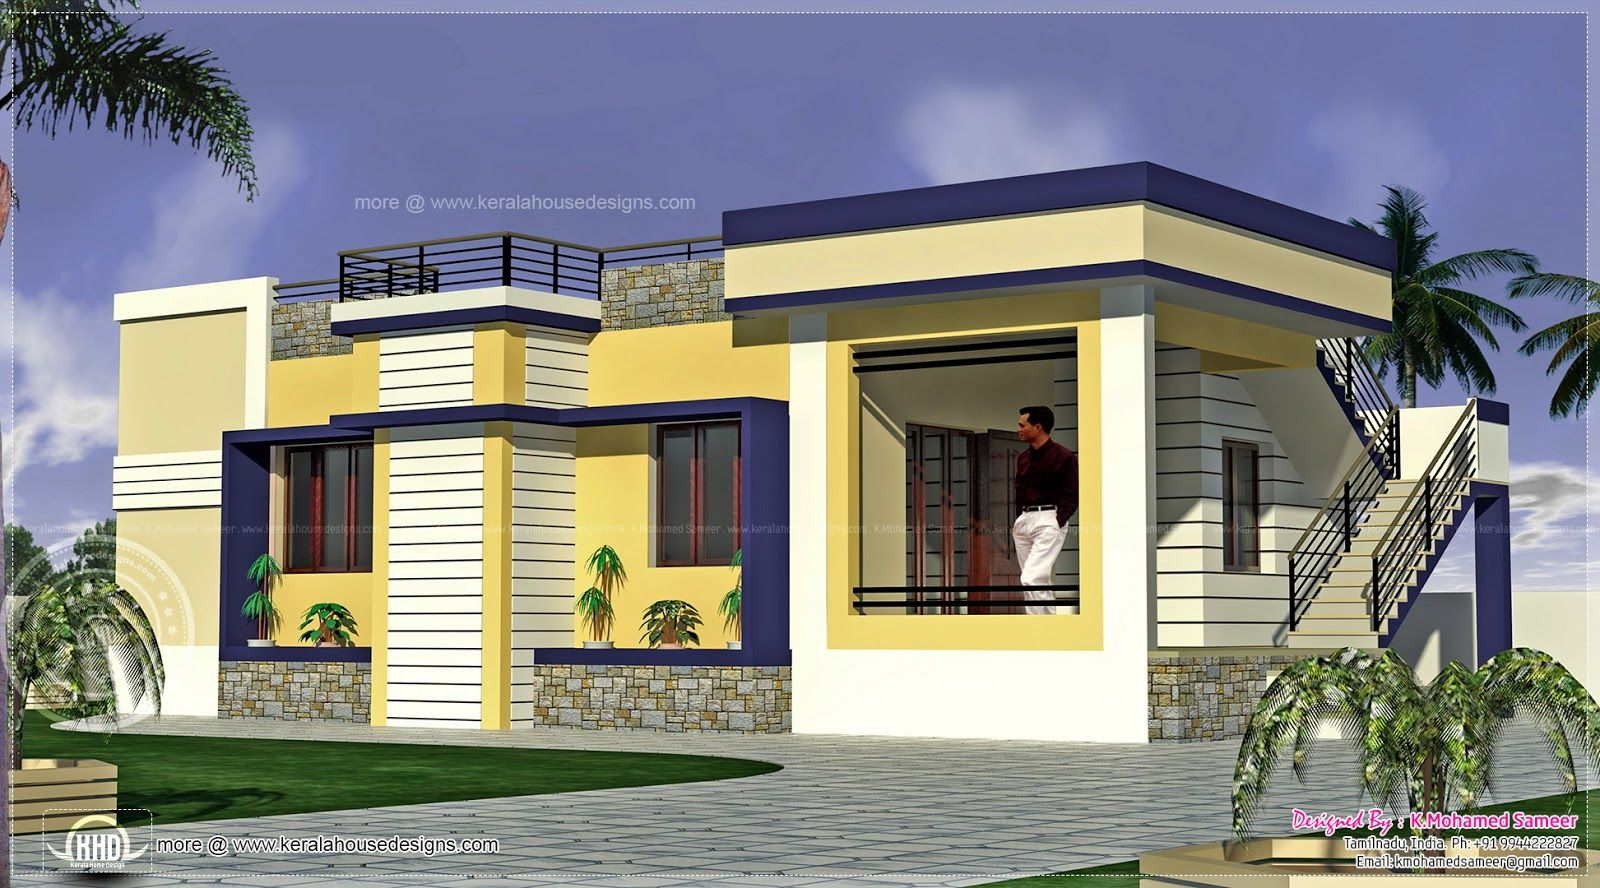 Karnataka House Front Elevation : Tamil nadu house plans sq ft l ca e f dea g